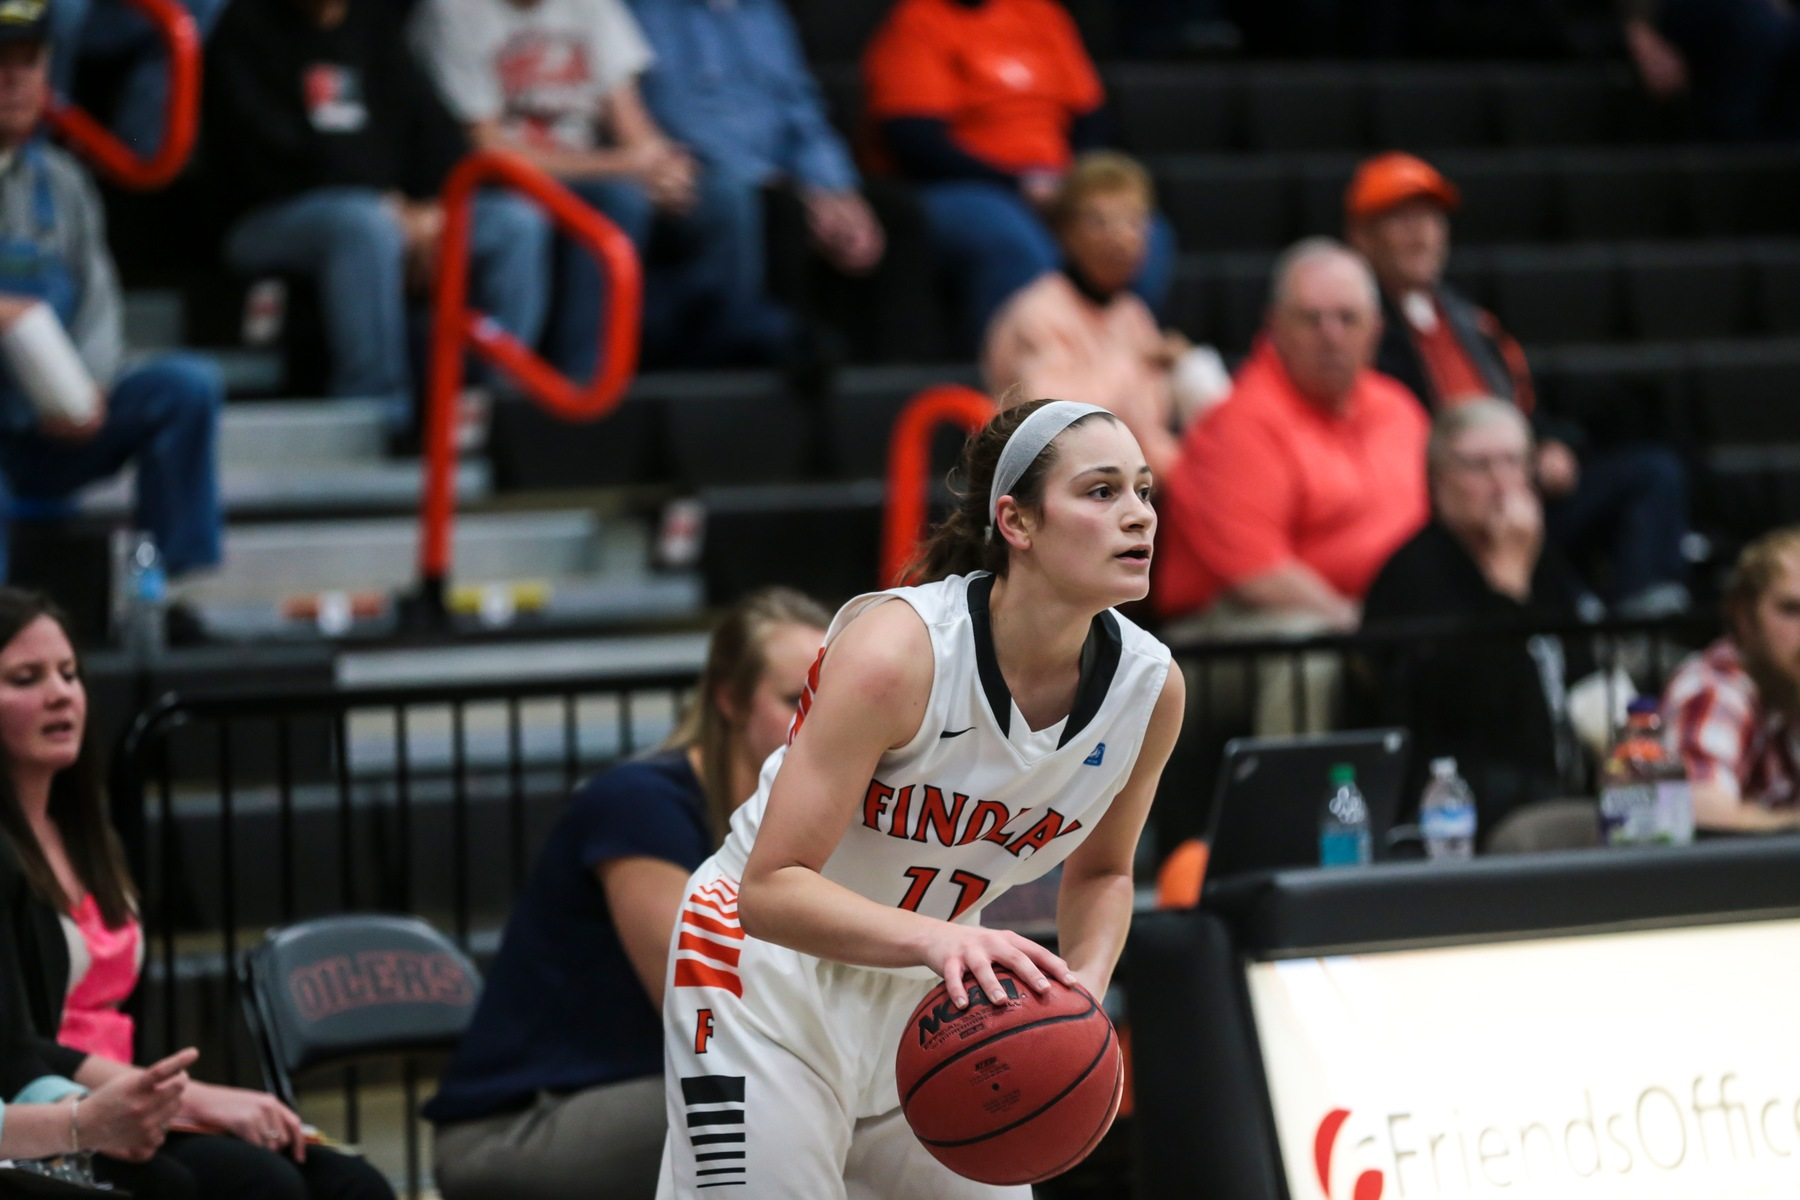 Englebrecht Leads Oilers to 73-51 Win at KWC